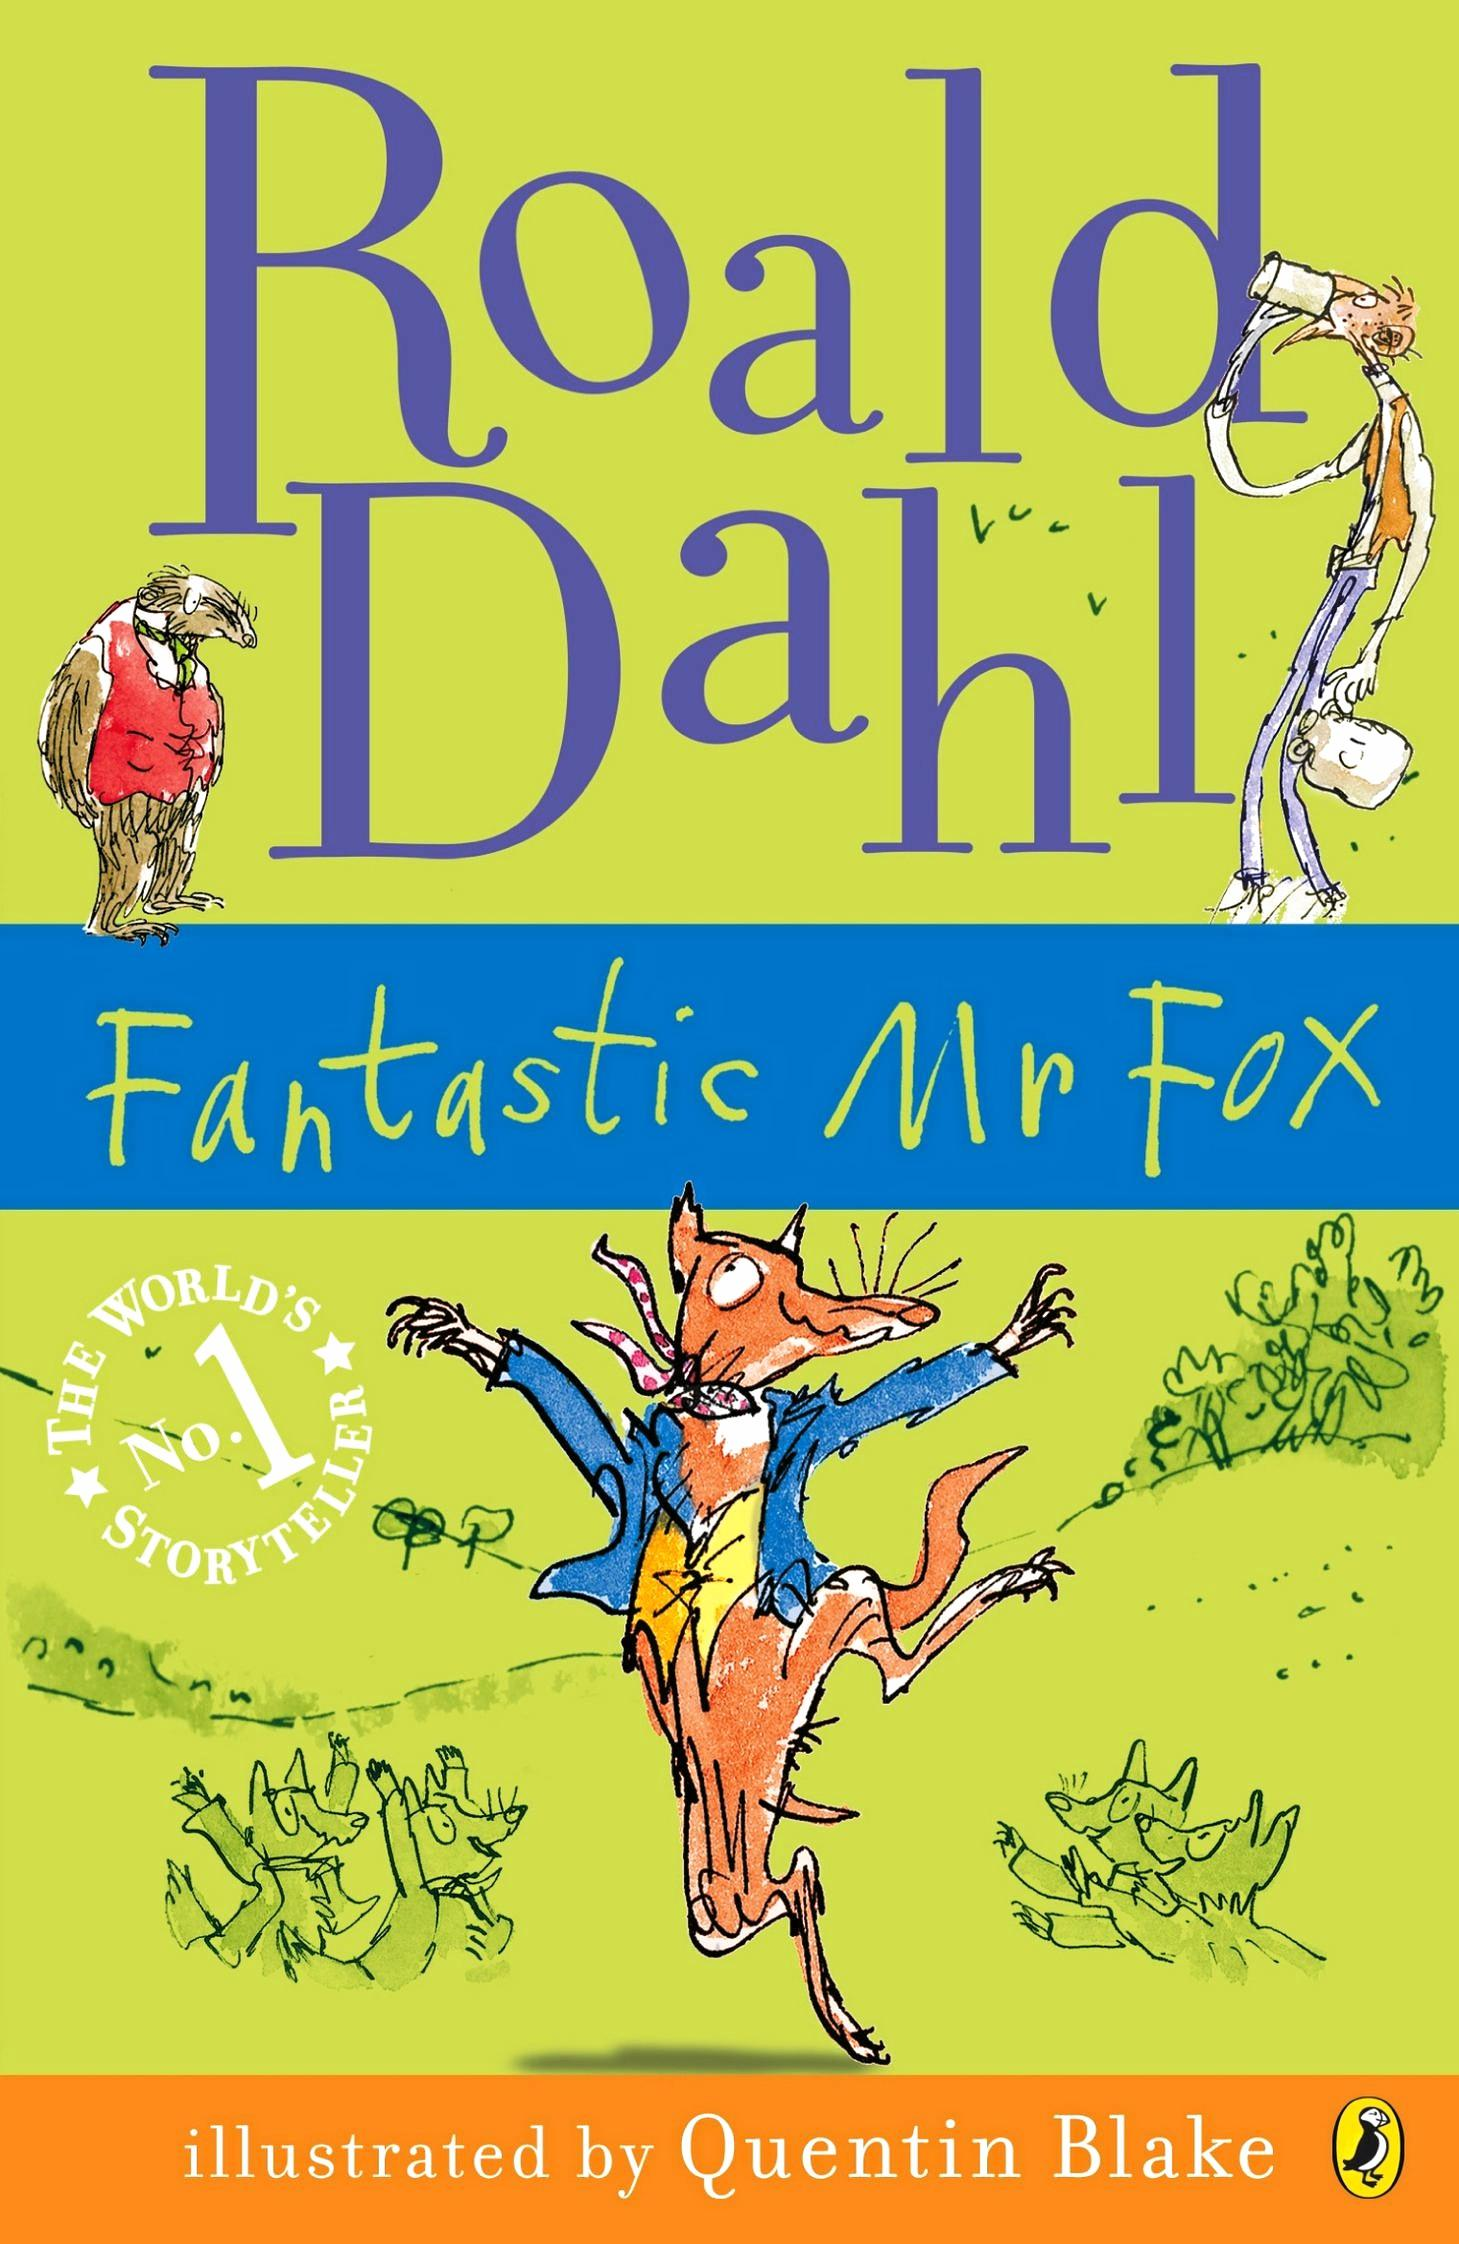 In many cultures, the fox appears in folklore as a symbol of cunning and trickery, or as a familiar animal possessed of magic powers.  Foxes have also become popular characters in books, TV shows and films.   Pictured: Roald Dahl's Fantastic Mr Fox.   Photo Contributed